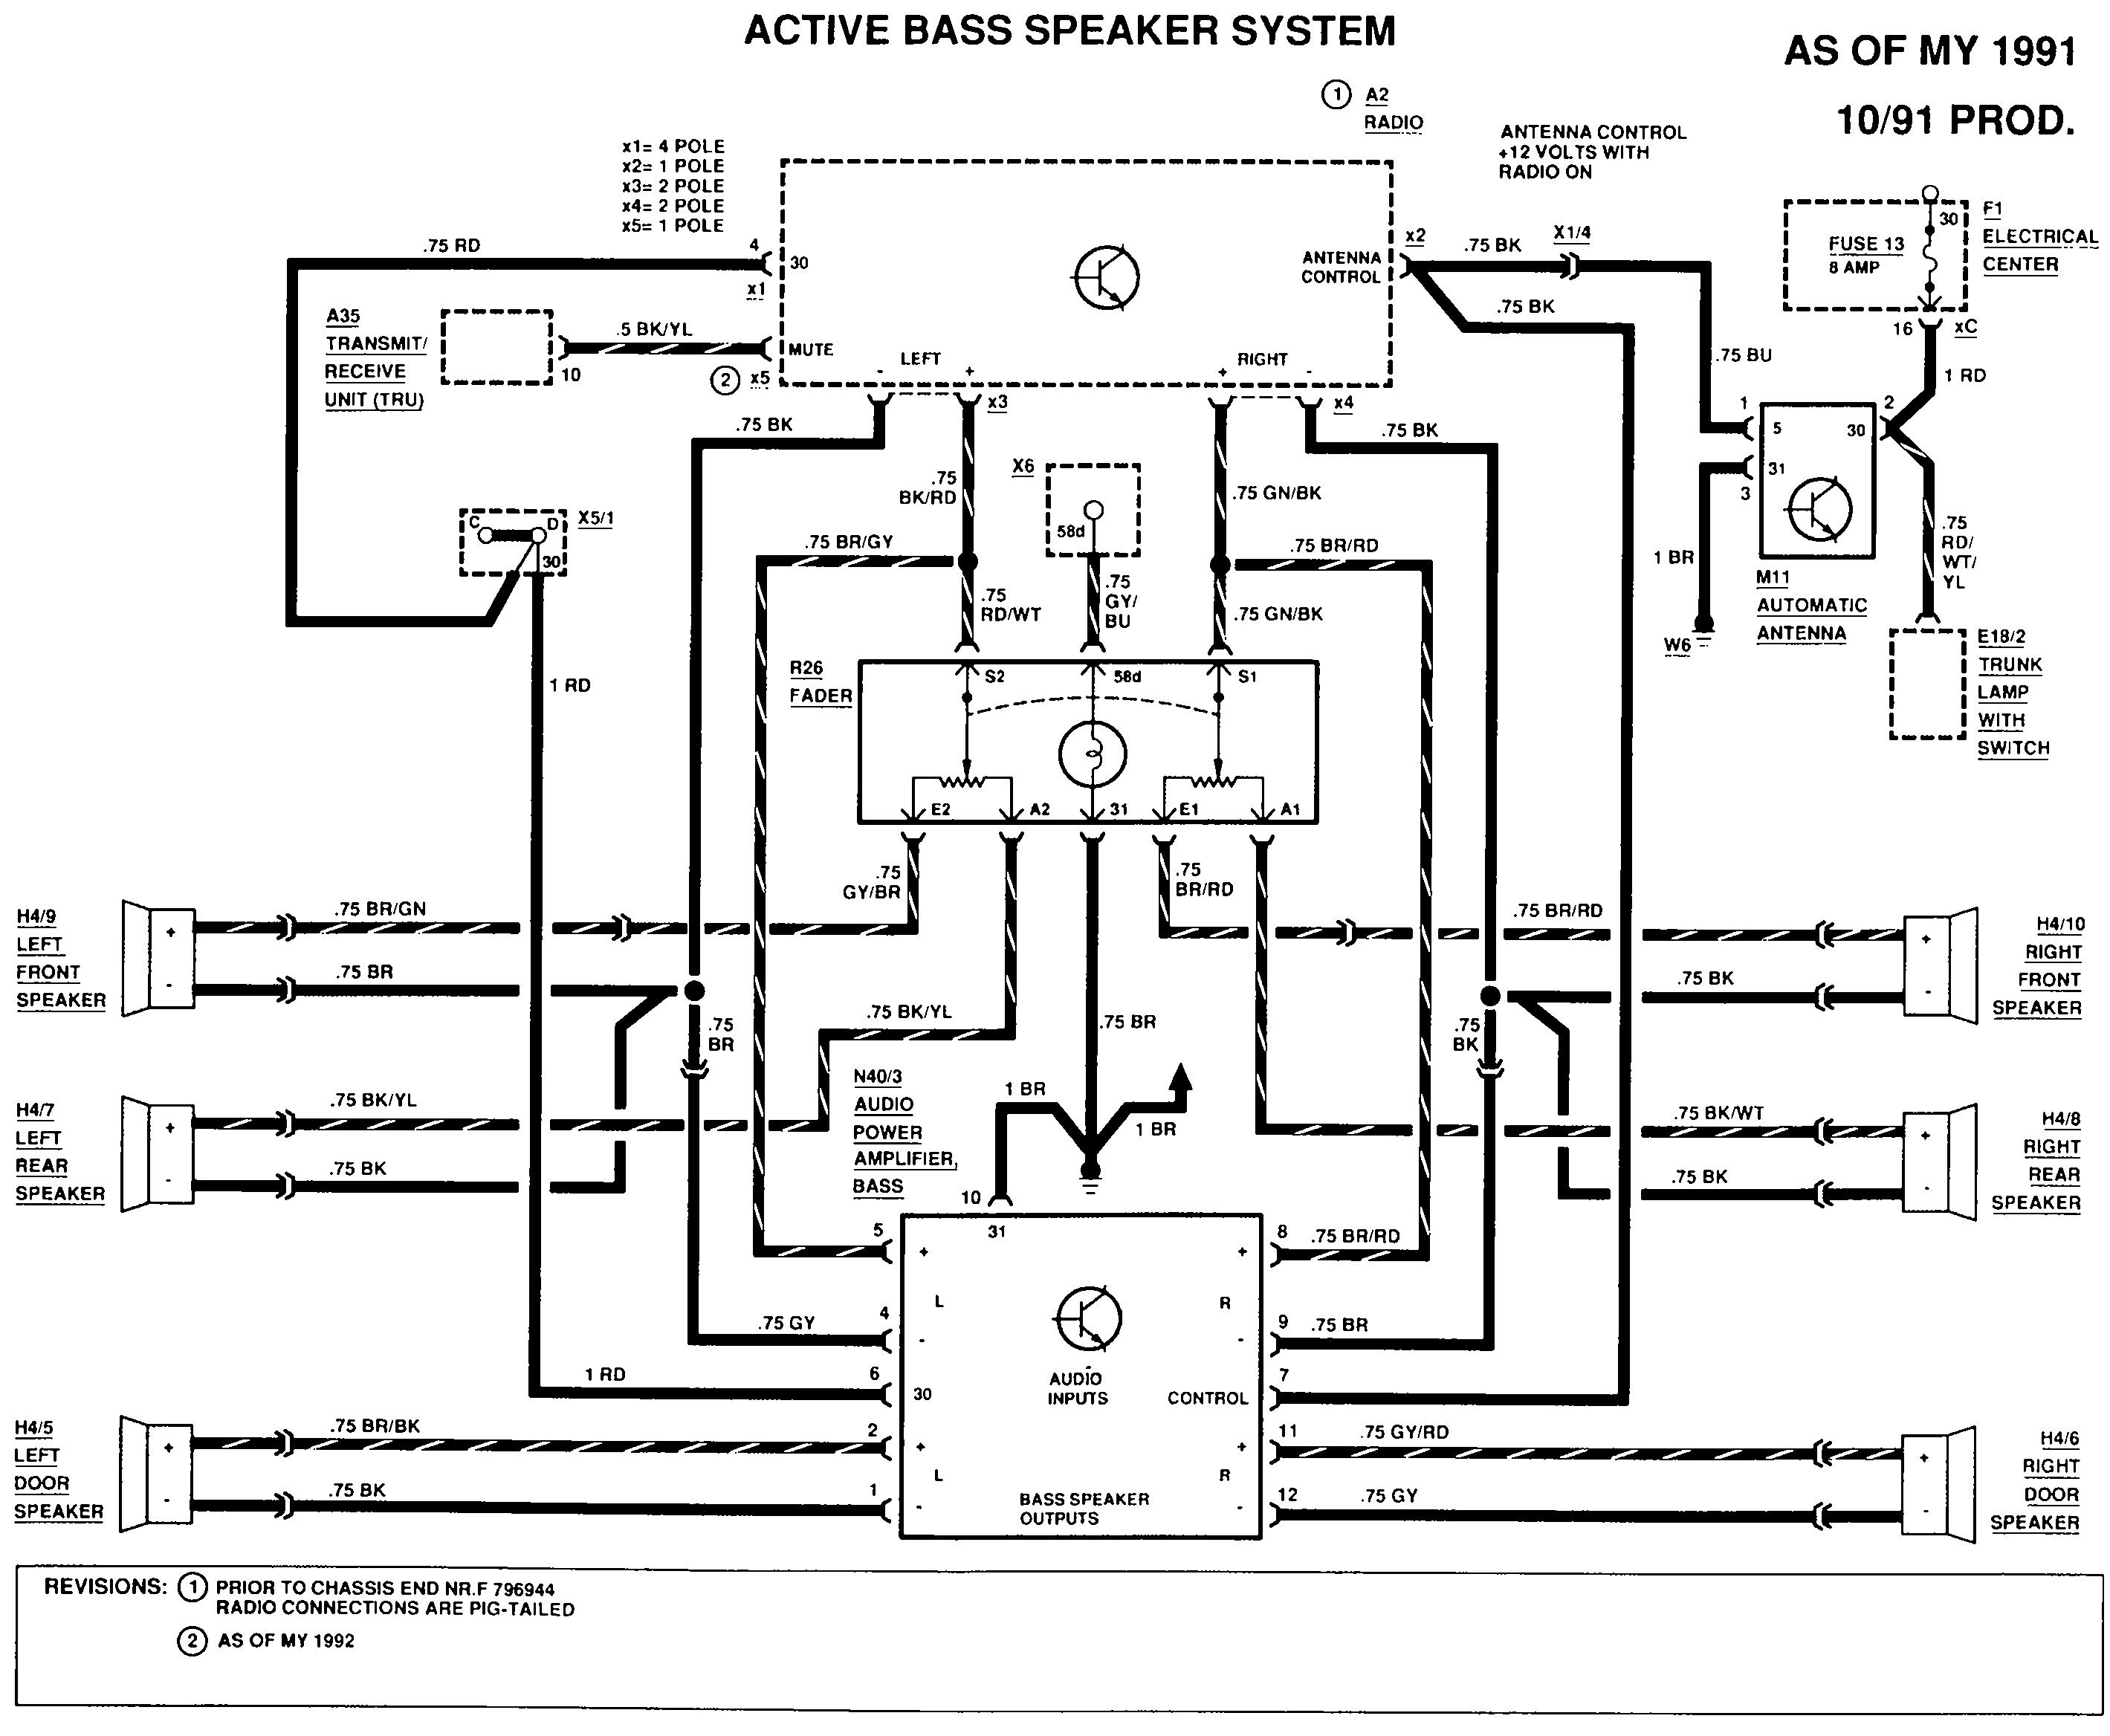 Mercedes Radio Wiring Diagram Ipod Installing New Connect What Wires - Usb Wiring Diagram Positive